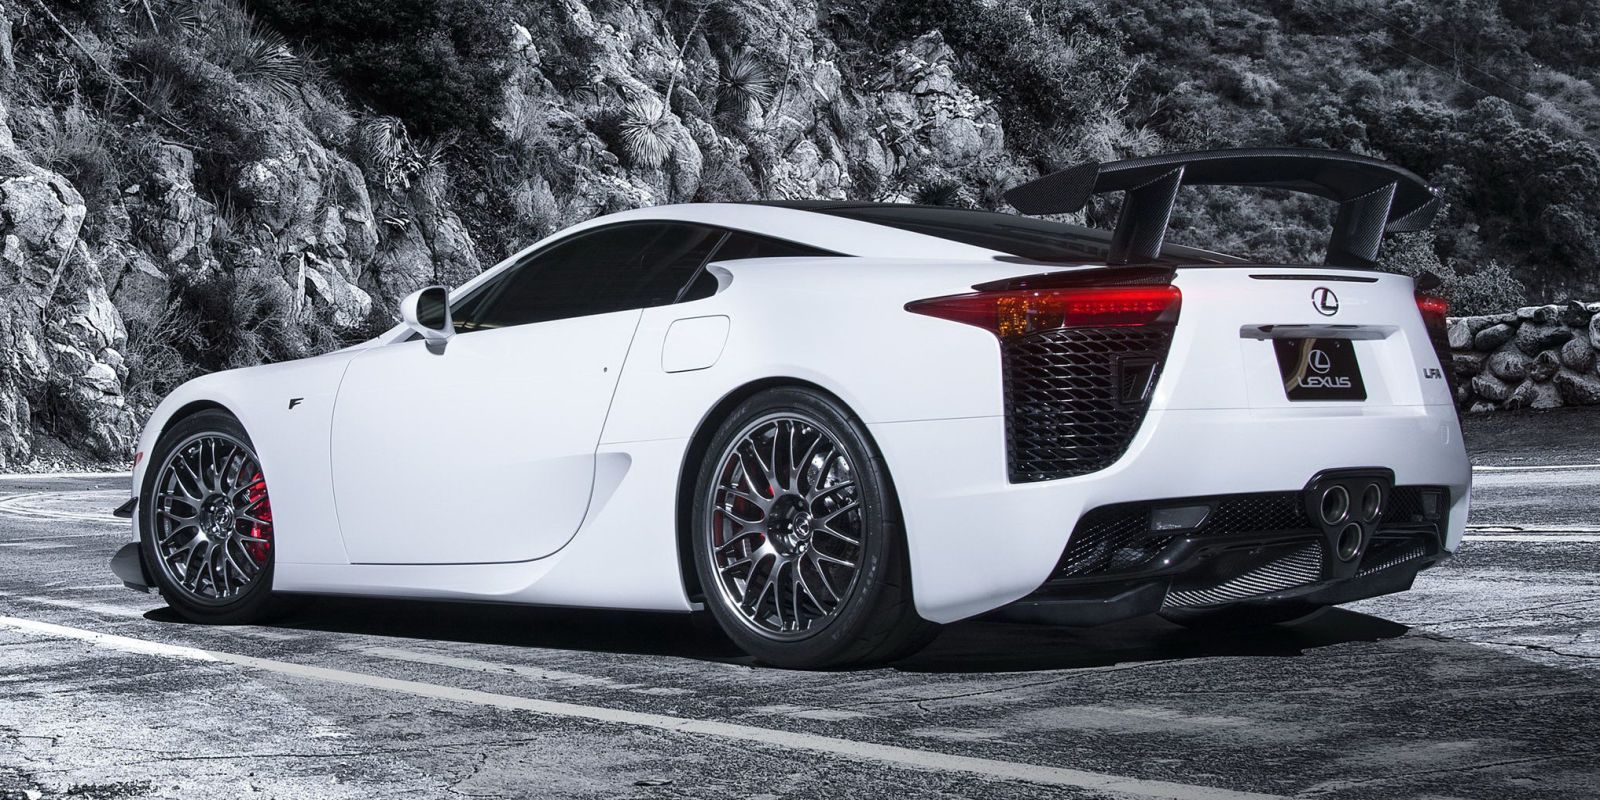 New, 800HP Lexus LFA Will Debut At 2019 Tokyo Motor Show, Says Wildly  Unsubstantiated Rumor